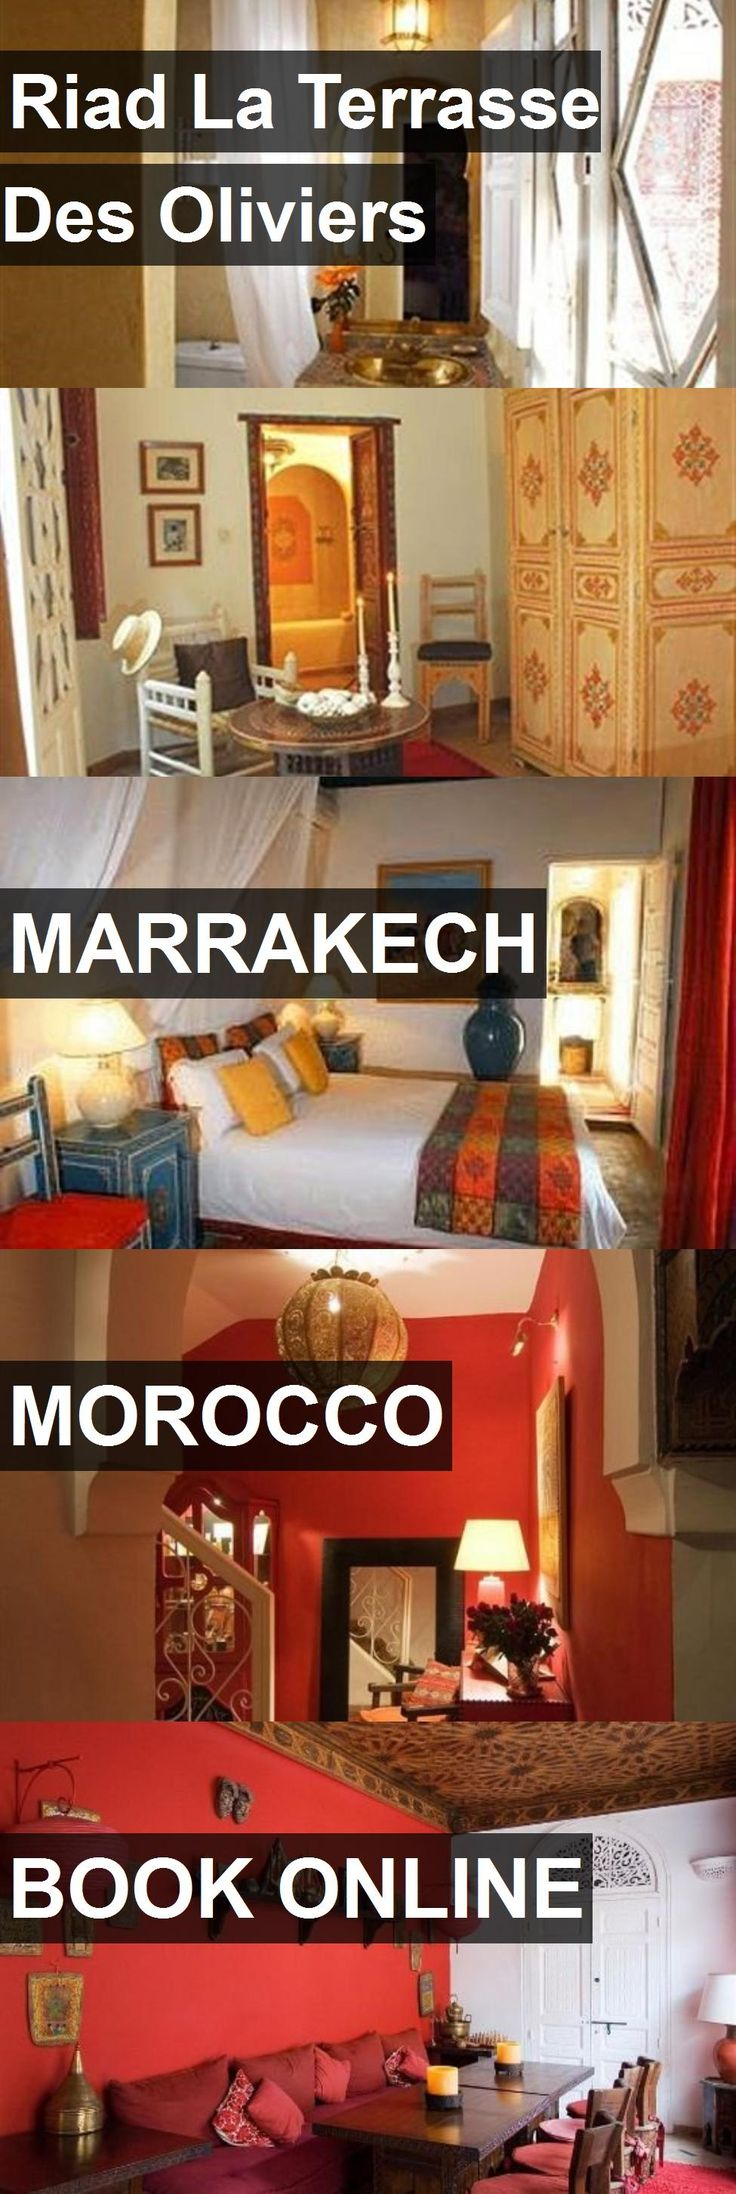 Hotel Riad La Terrasse Des Oliviers in Marrakech, Morocco. For more information, photos, reviews and best prices please follow the link. #Morocco #Marrakech #travel #vacation #hotel